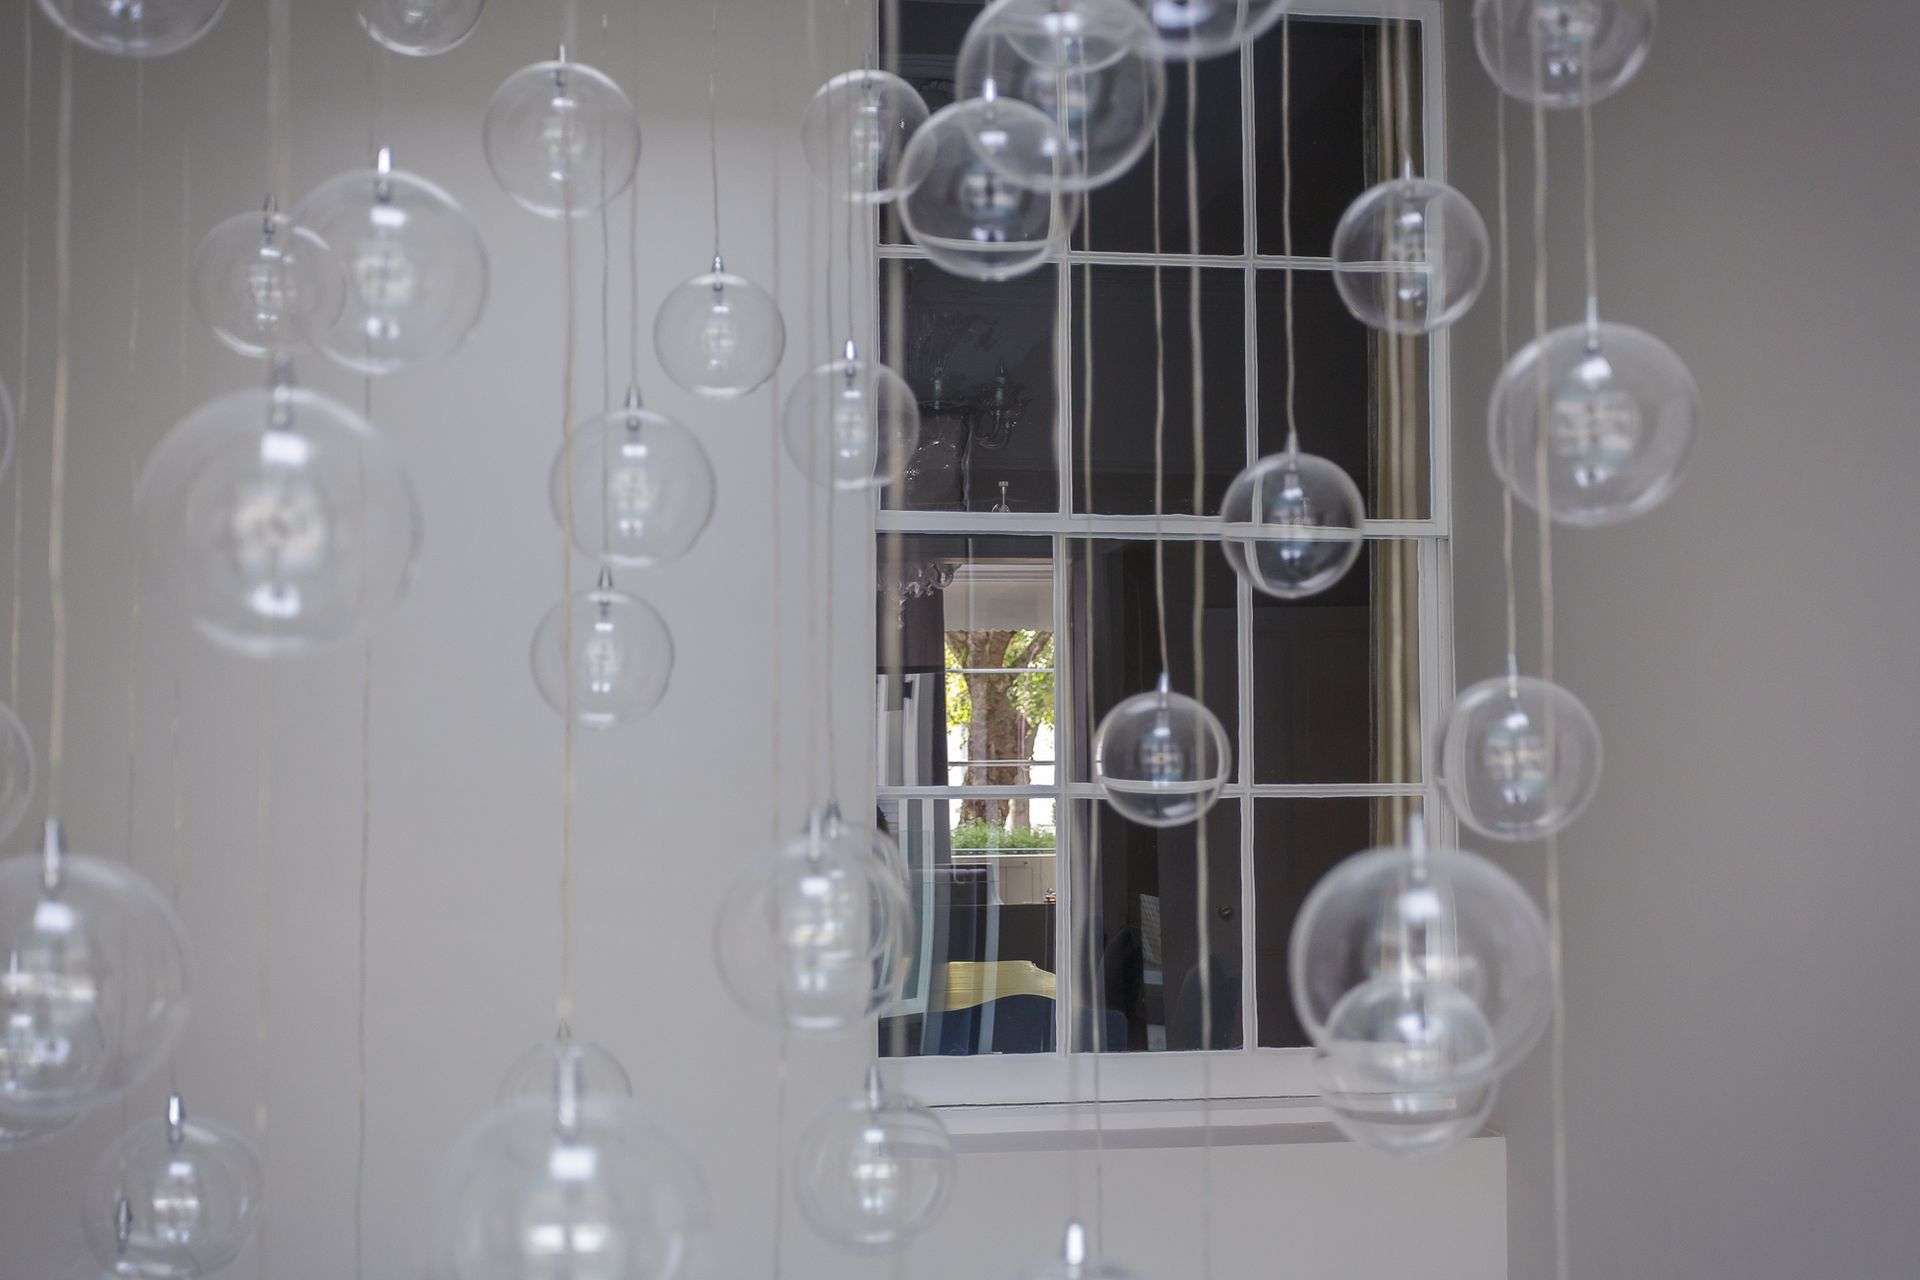 CE - 12 Royal Parade - glass stairwell 007